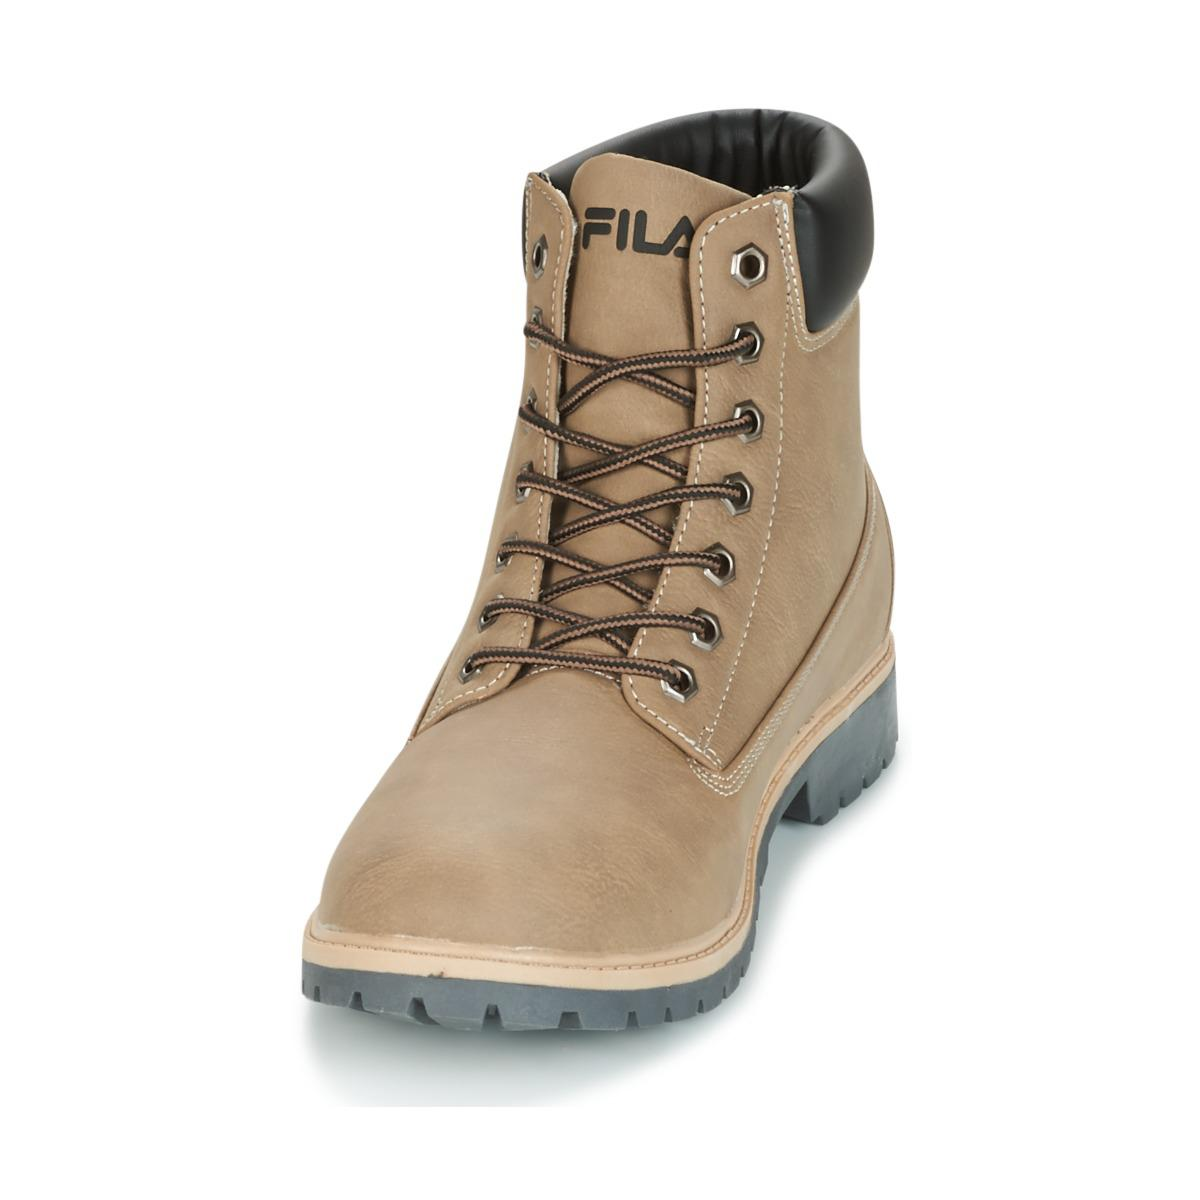 Lyst Fila Maverick Mid Men S Mid Boots In Brown In Brown